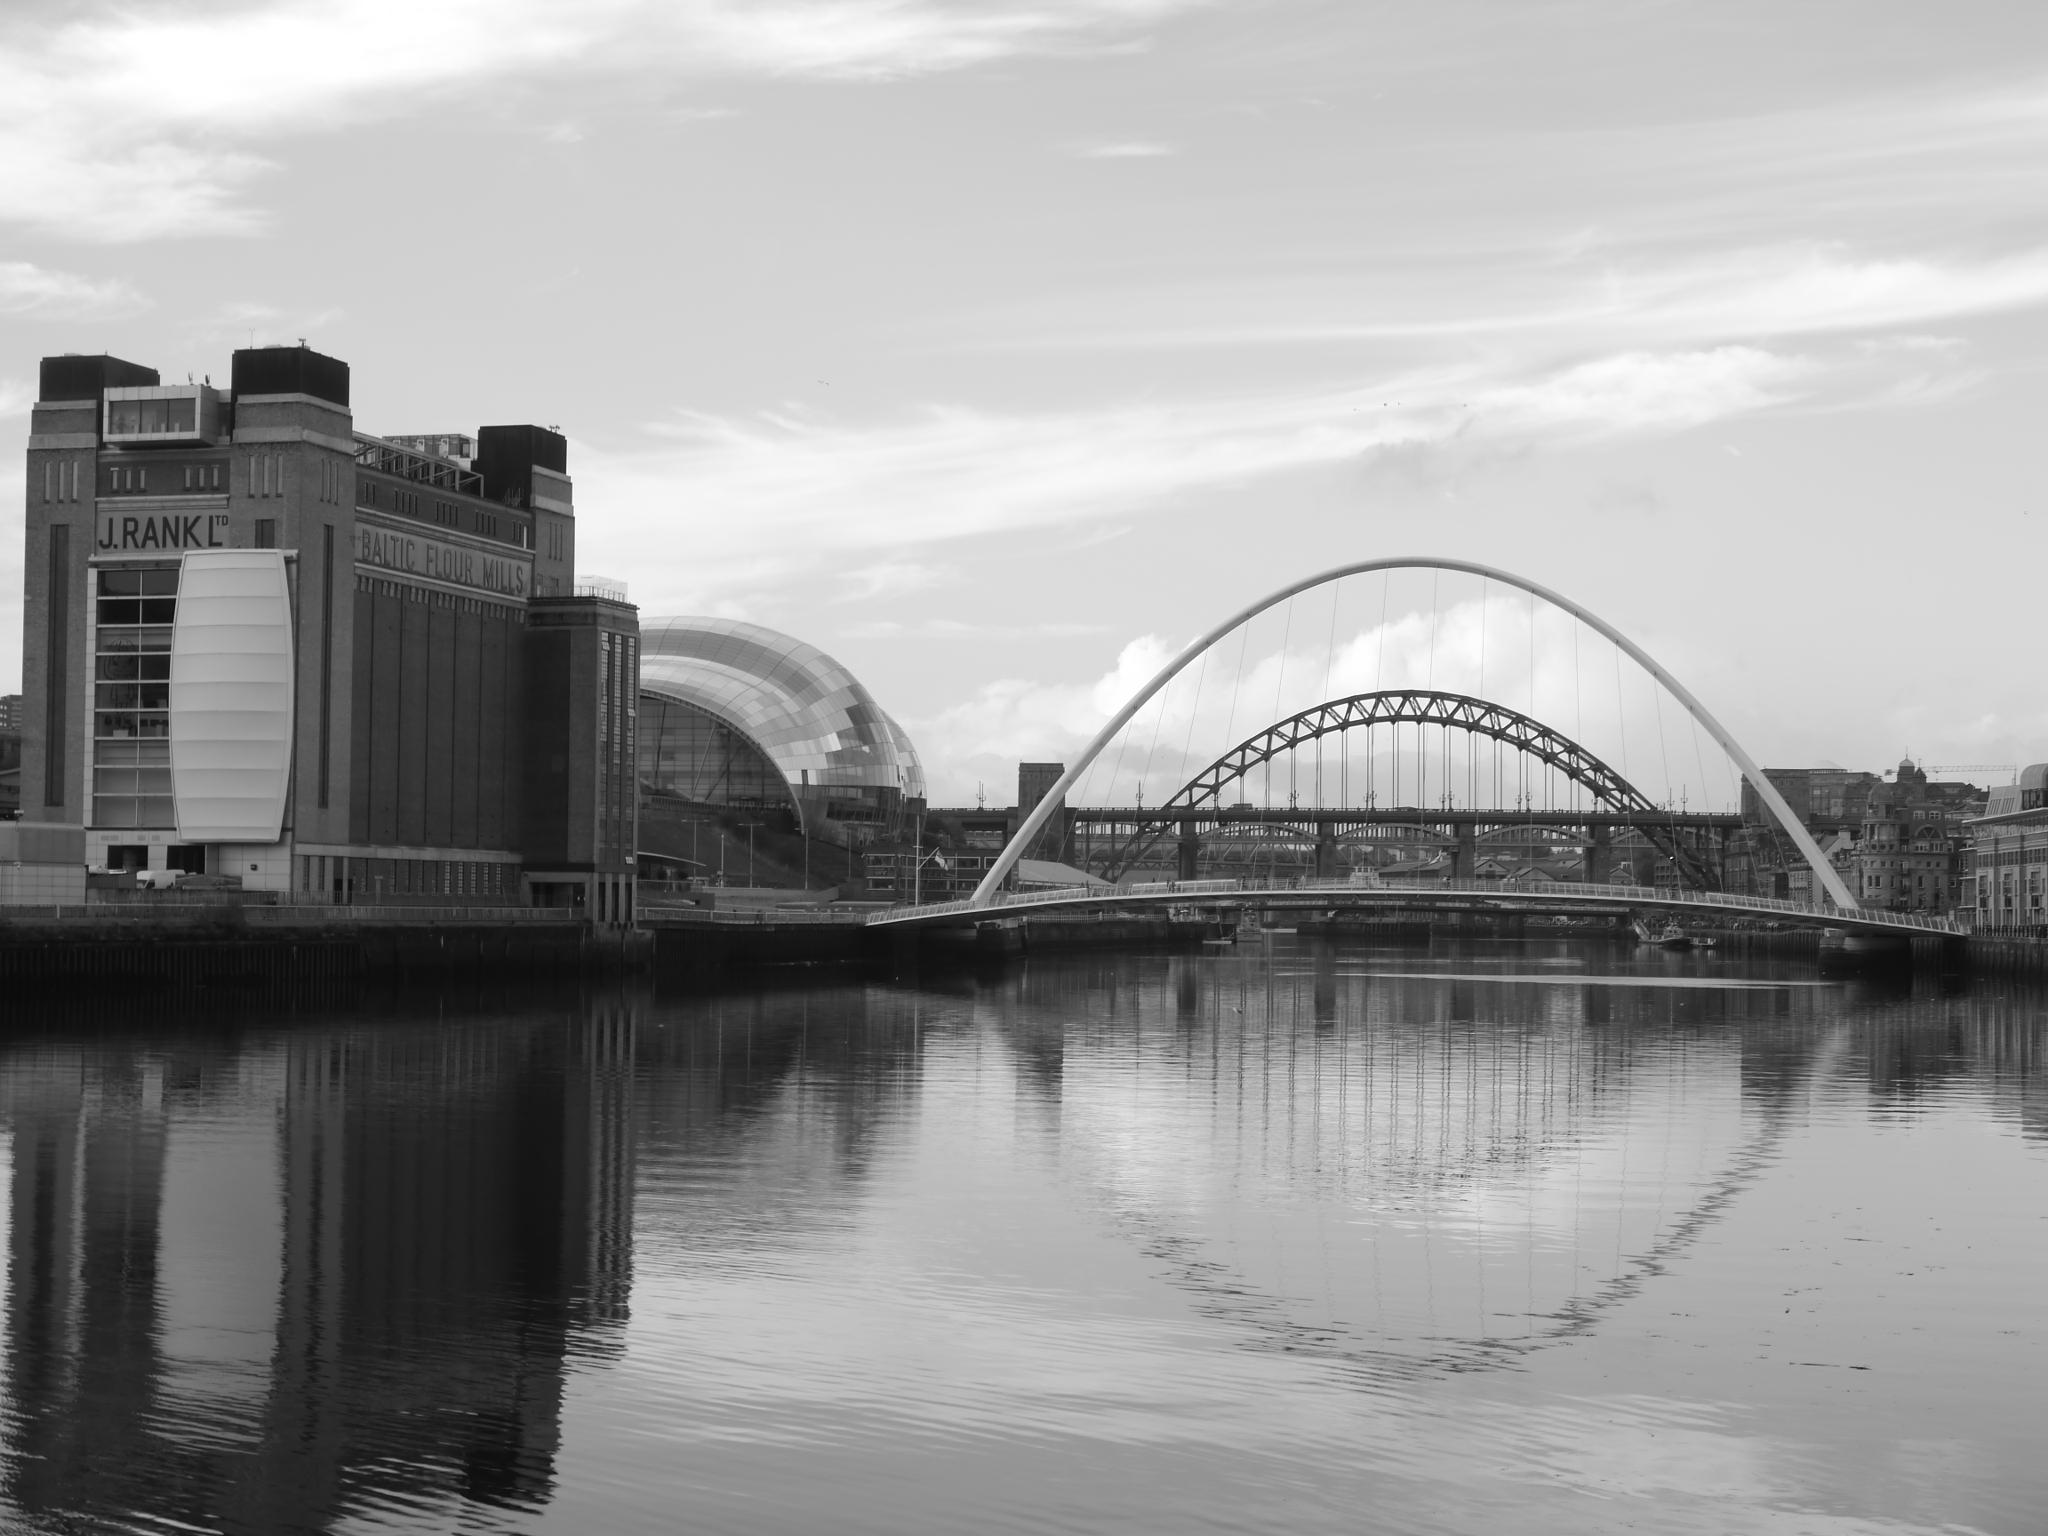 River Tyne by Darren Turner